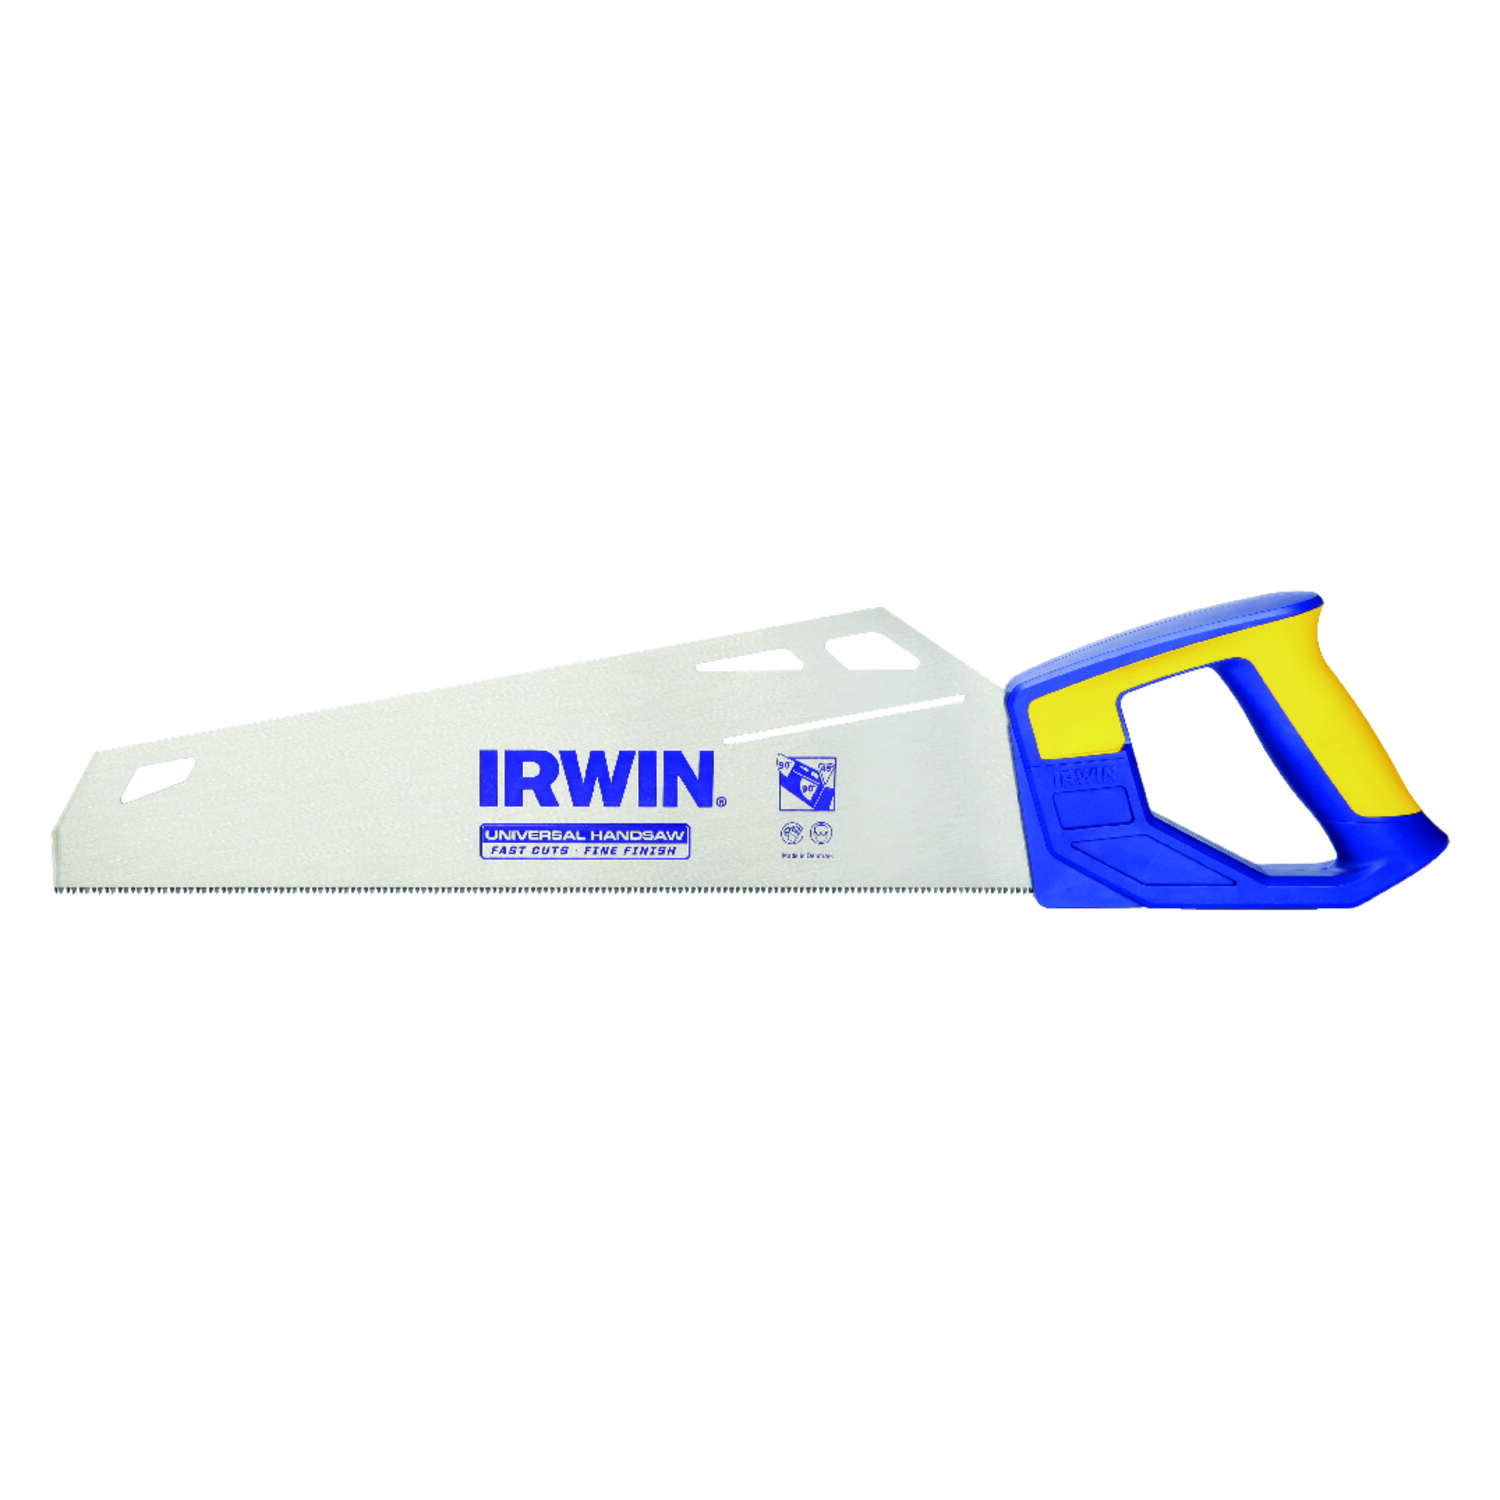 Irwin  15 in. High Carbon Steel  Multi-Use Saw  11 TPI 1 pc.